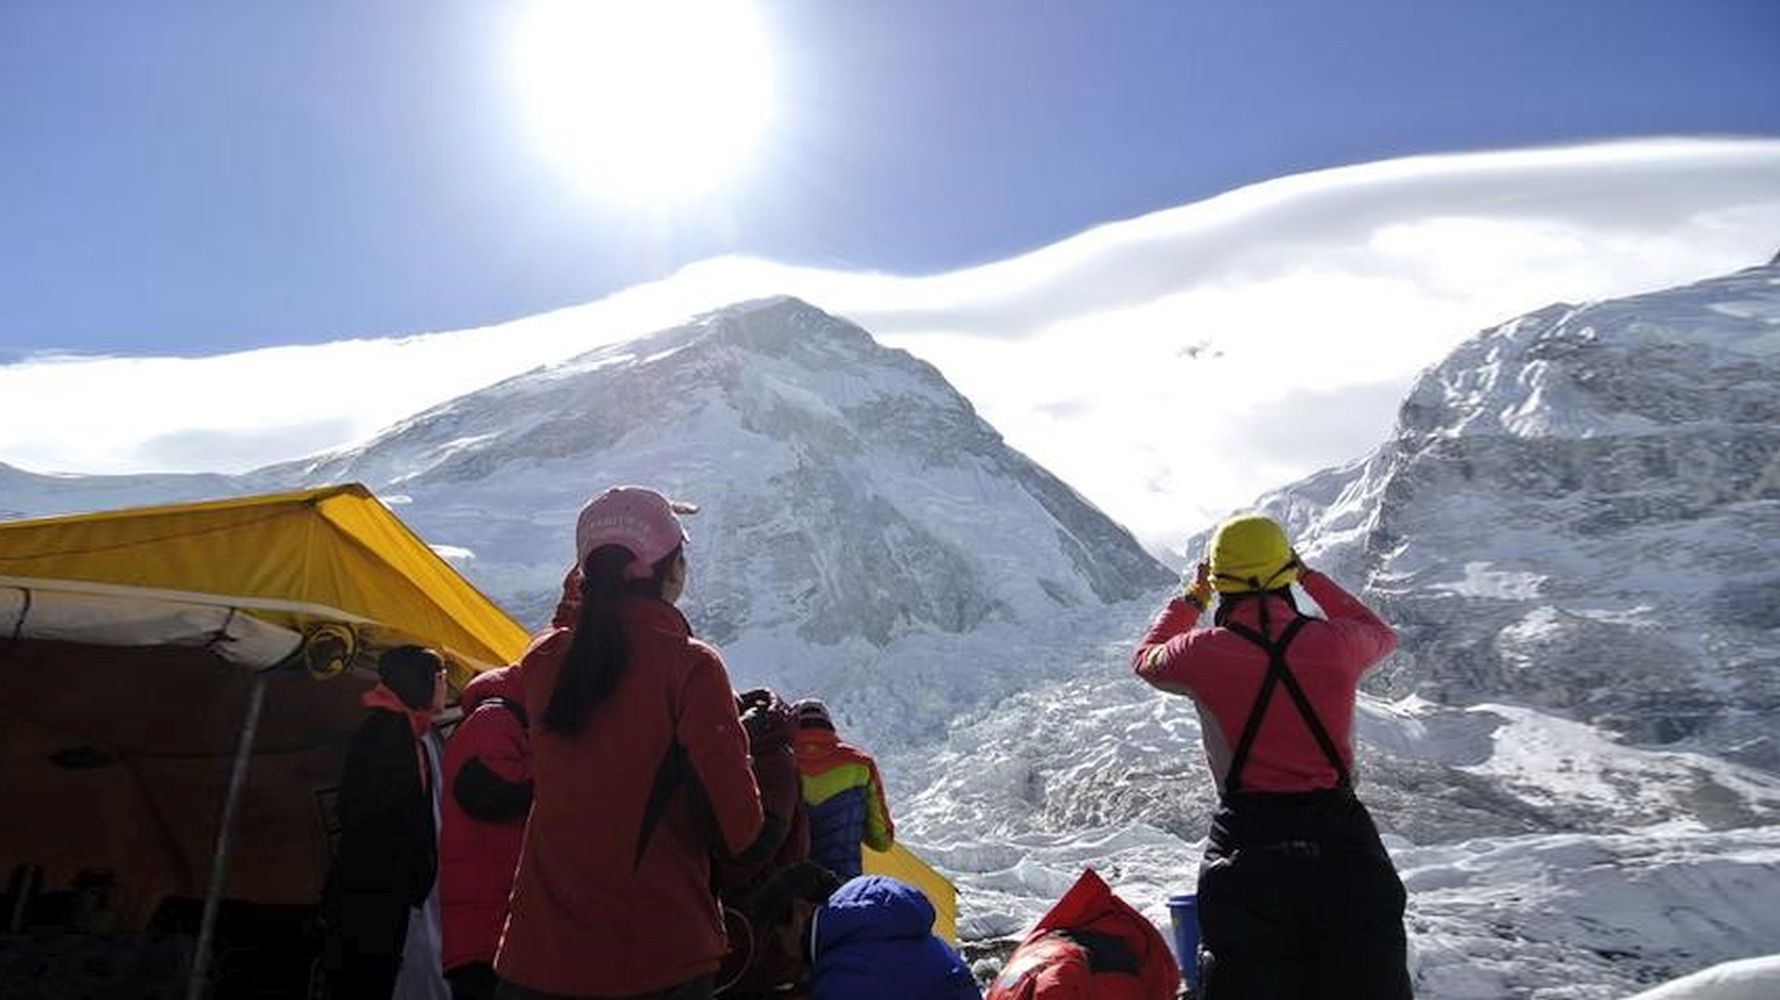 The gin will draw a border line to the top of everest to prevent the entry of covid